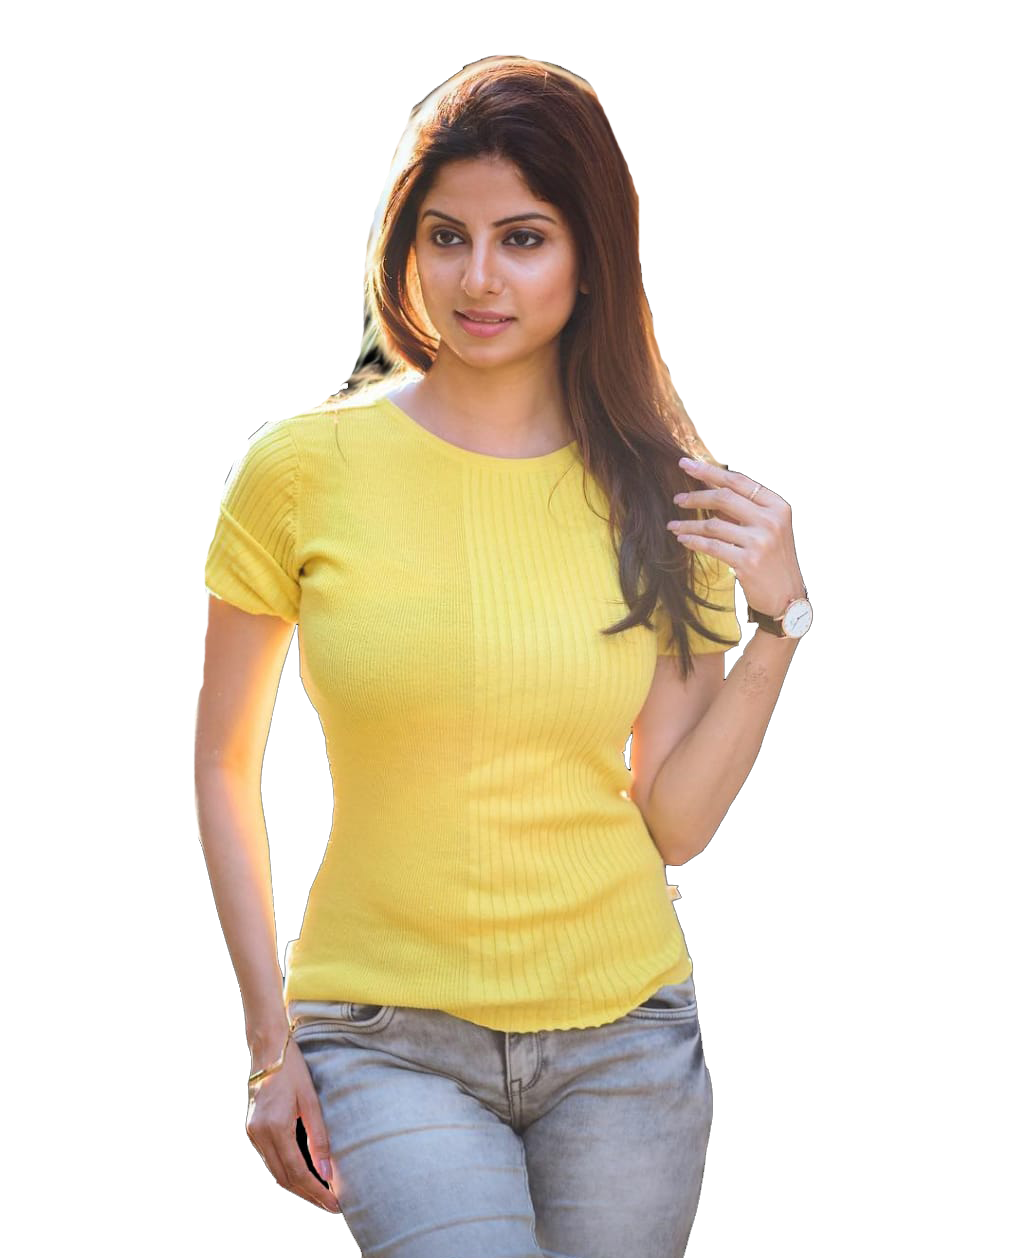 Girls PNG 2018 new Indian Girls HD PNG Download for editing.